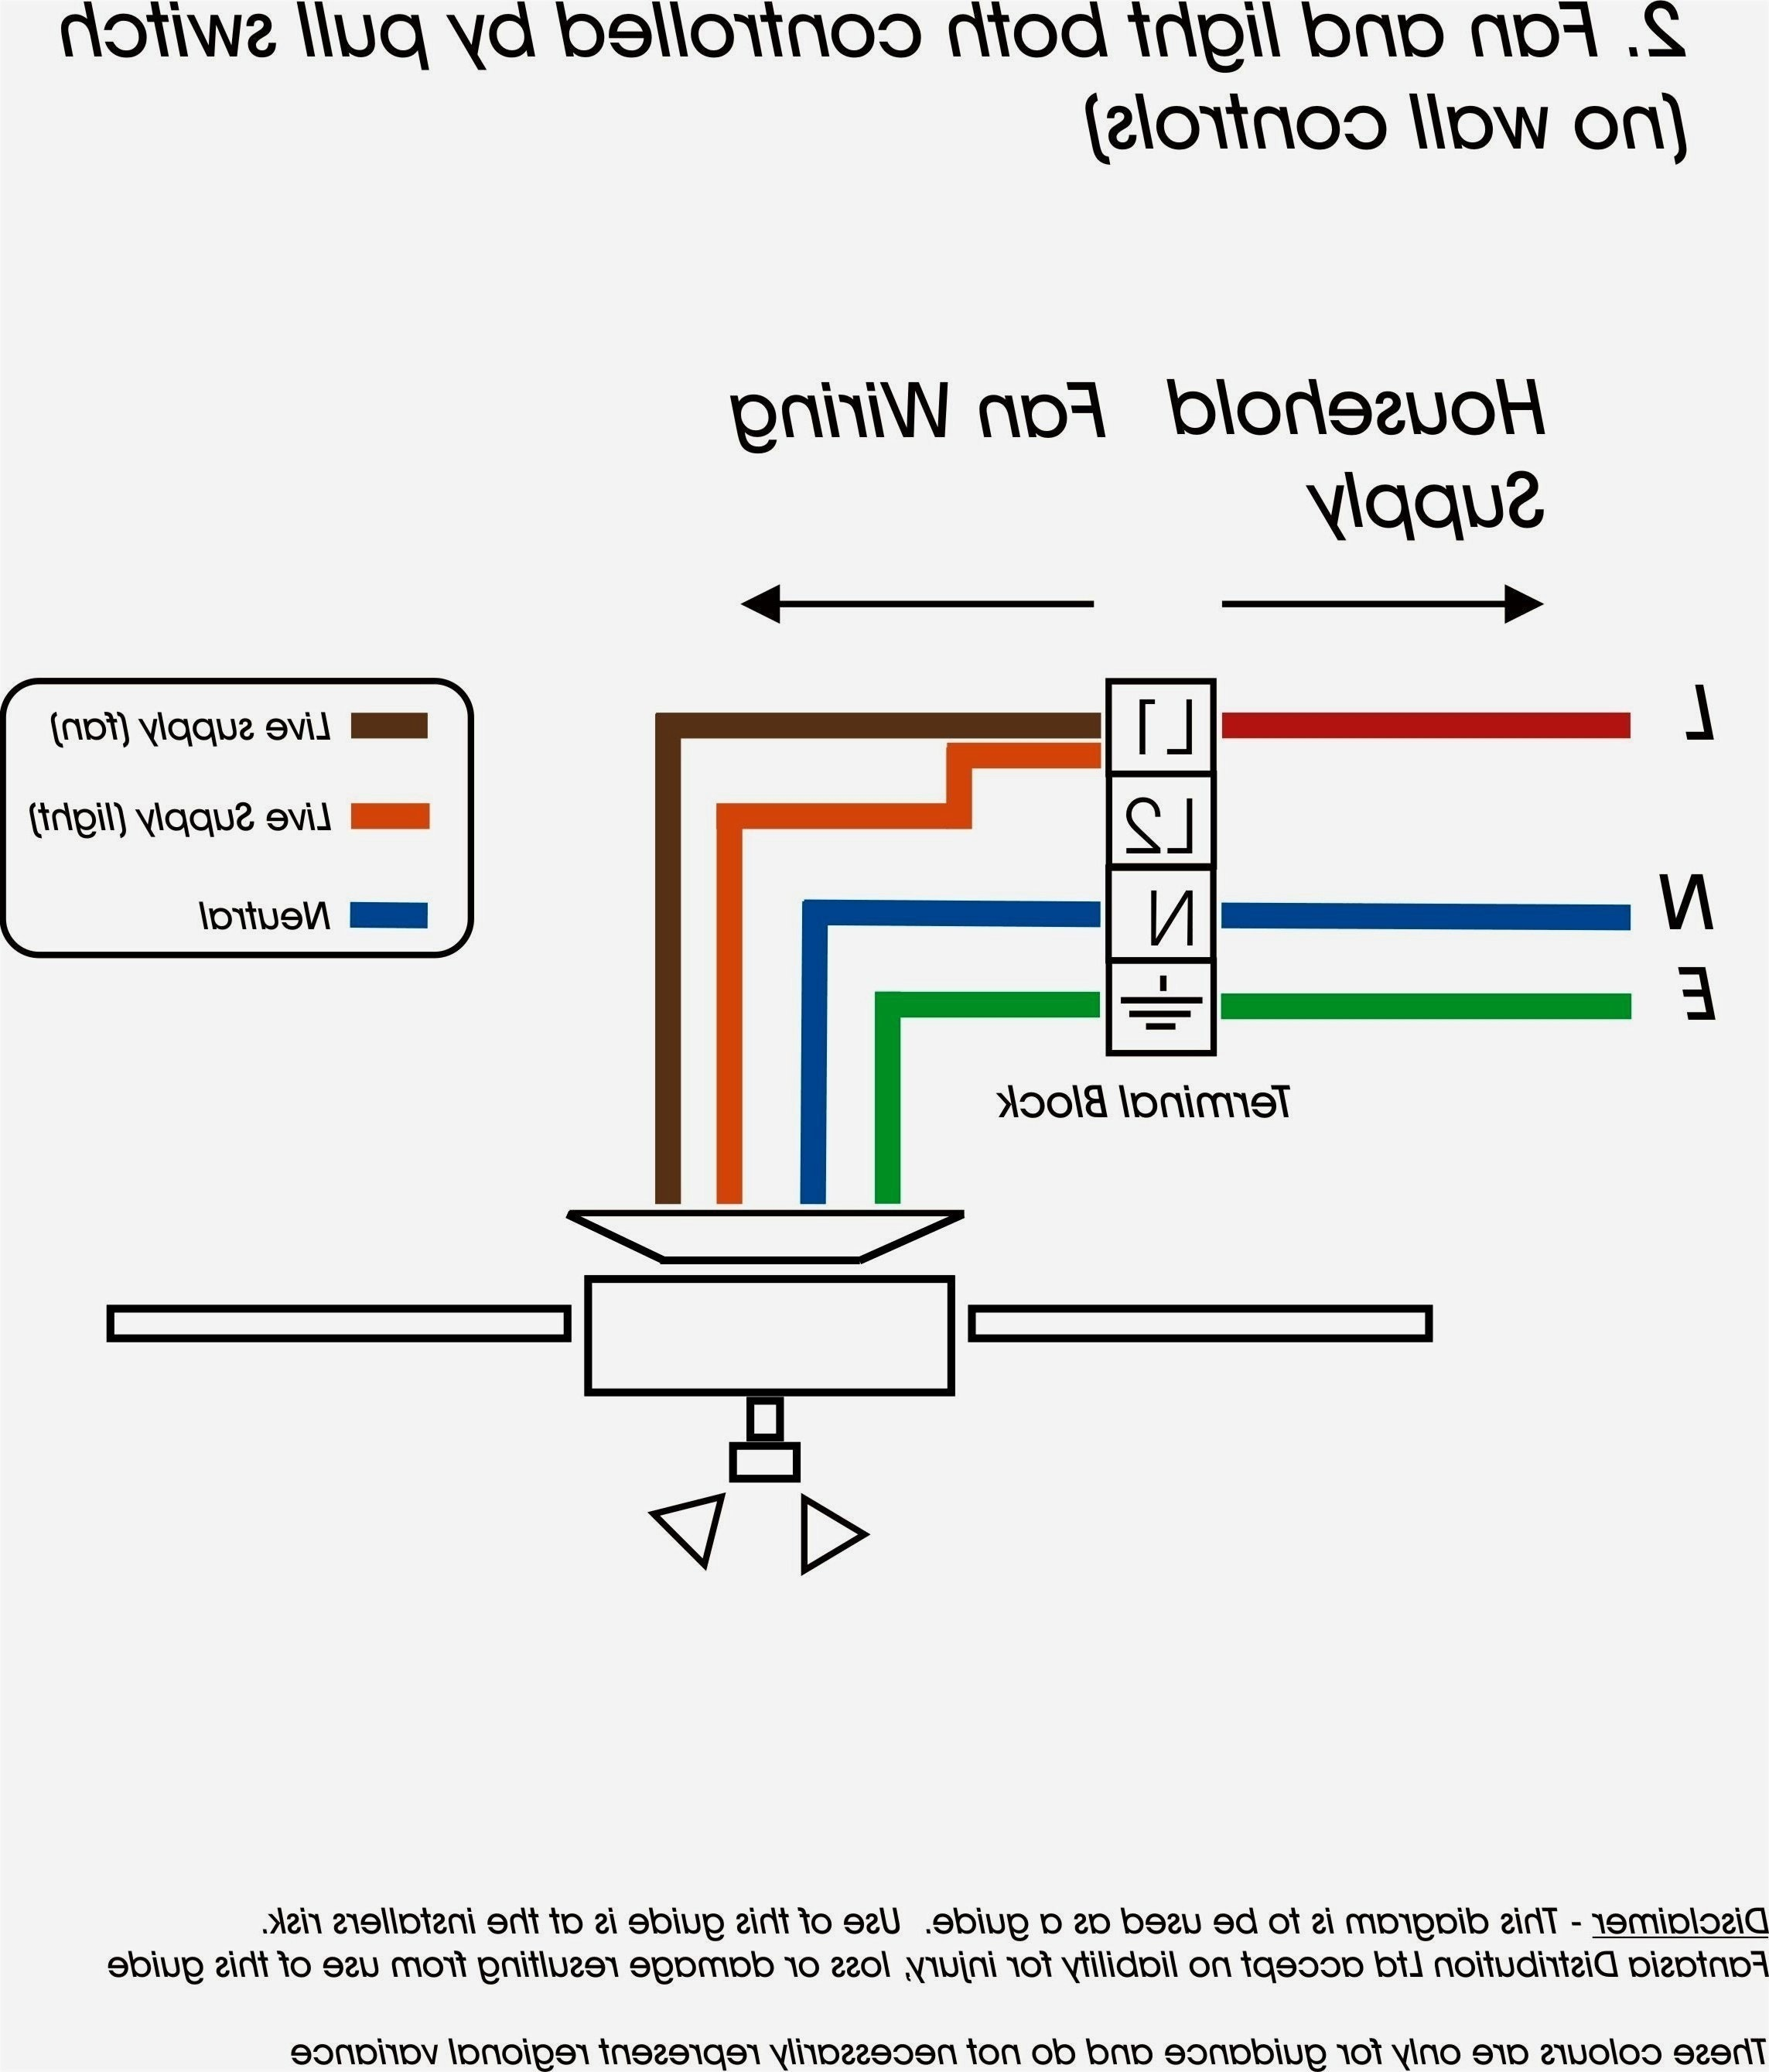 Gfci Breaker Wiring Diagram Book Wiring Diagram For Gfci Breaker Best 3 Pole Circuit Breaker Wiring